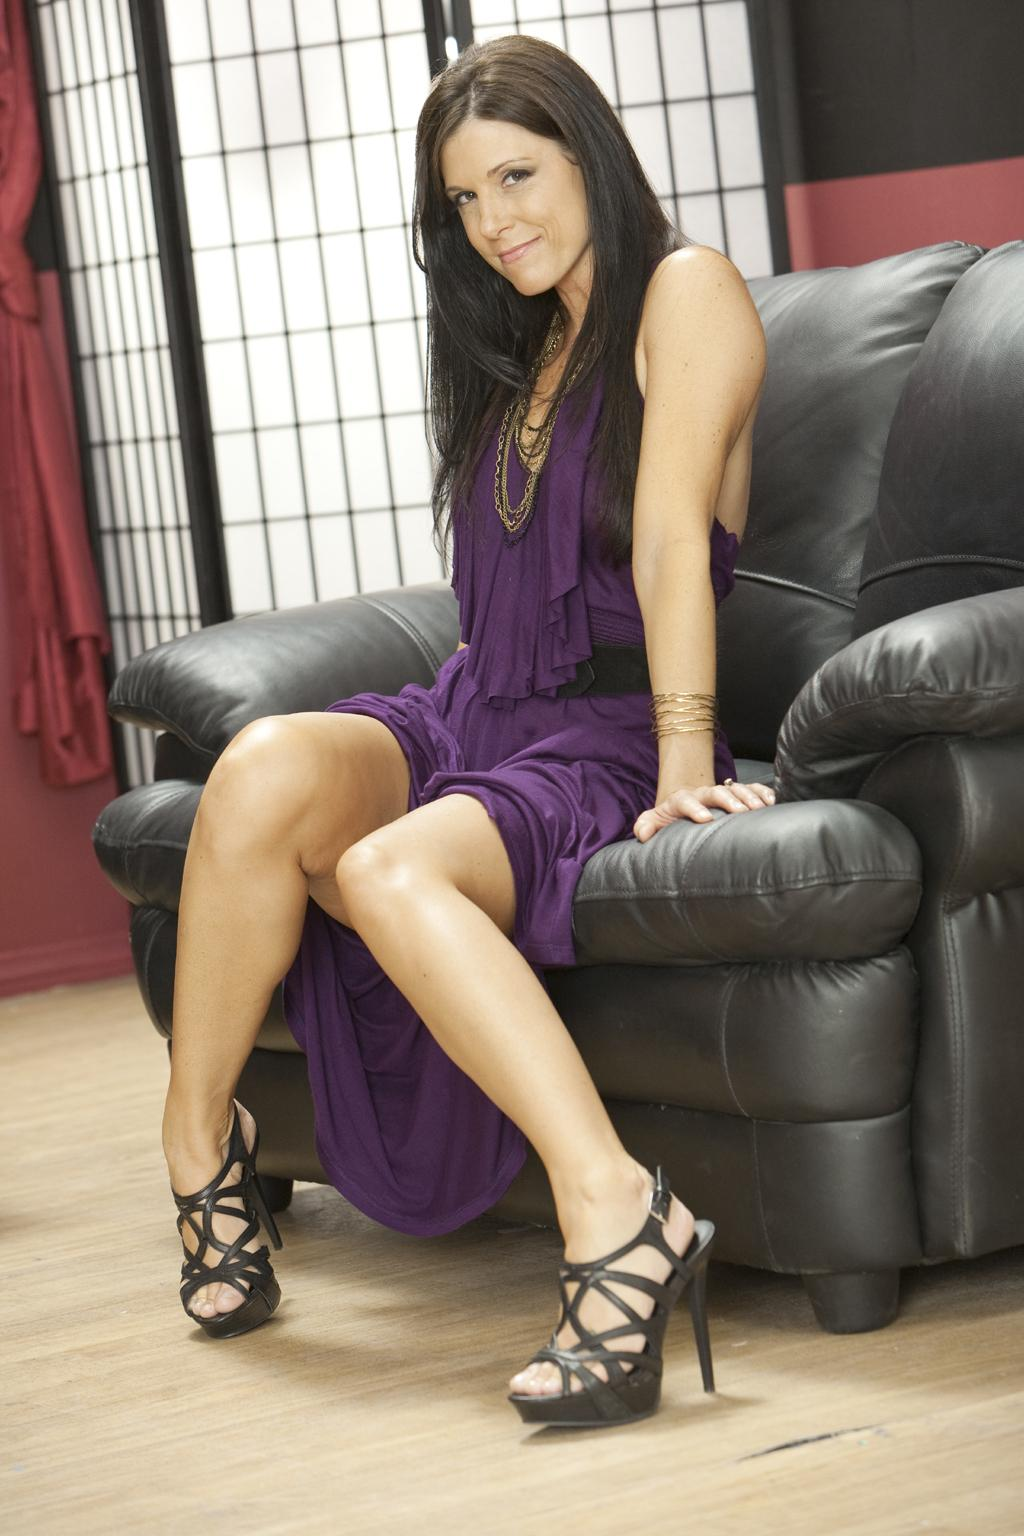 India Summer Lesbian Good india summers - free pics, videos & biography